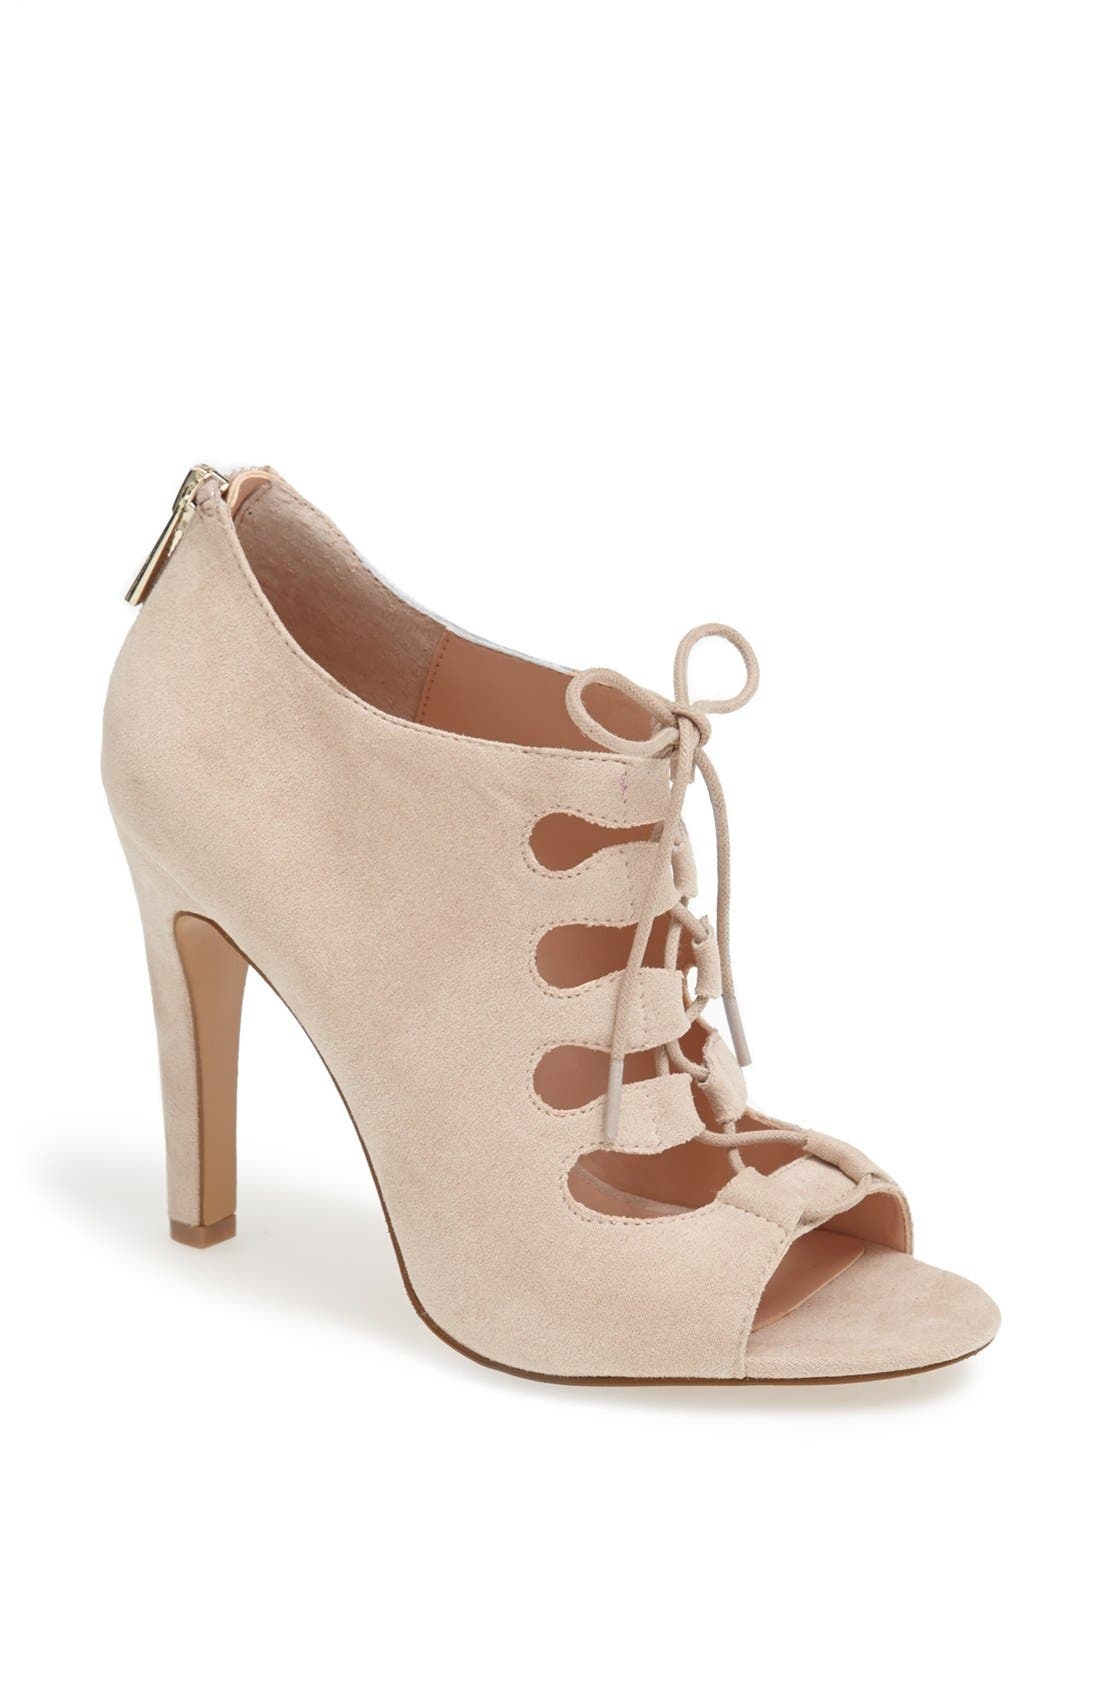 SOLE SOCIETY 'Mandee' Open Front Bootie, Main, color, 250